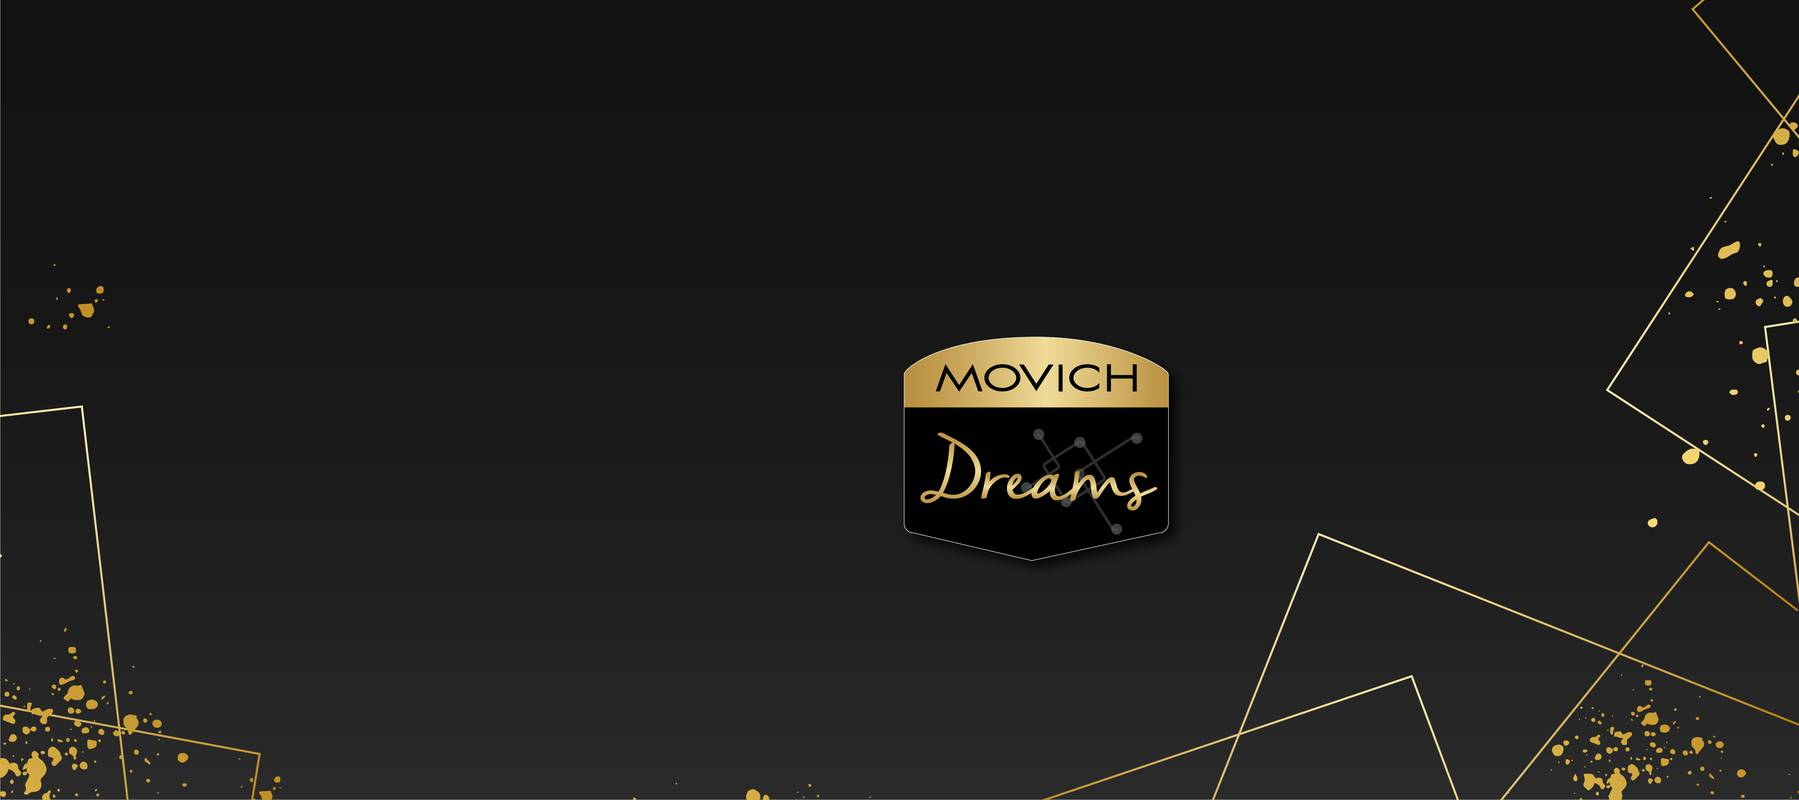 sign up and enjoy Movich Hotels